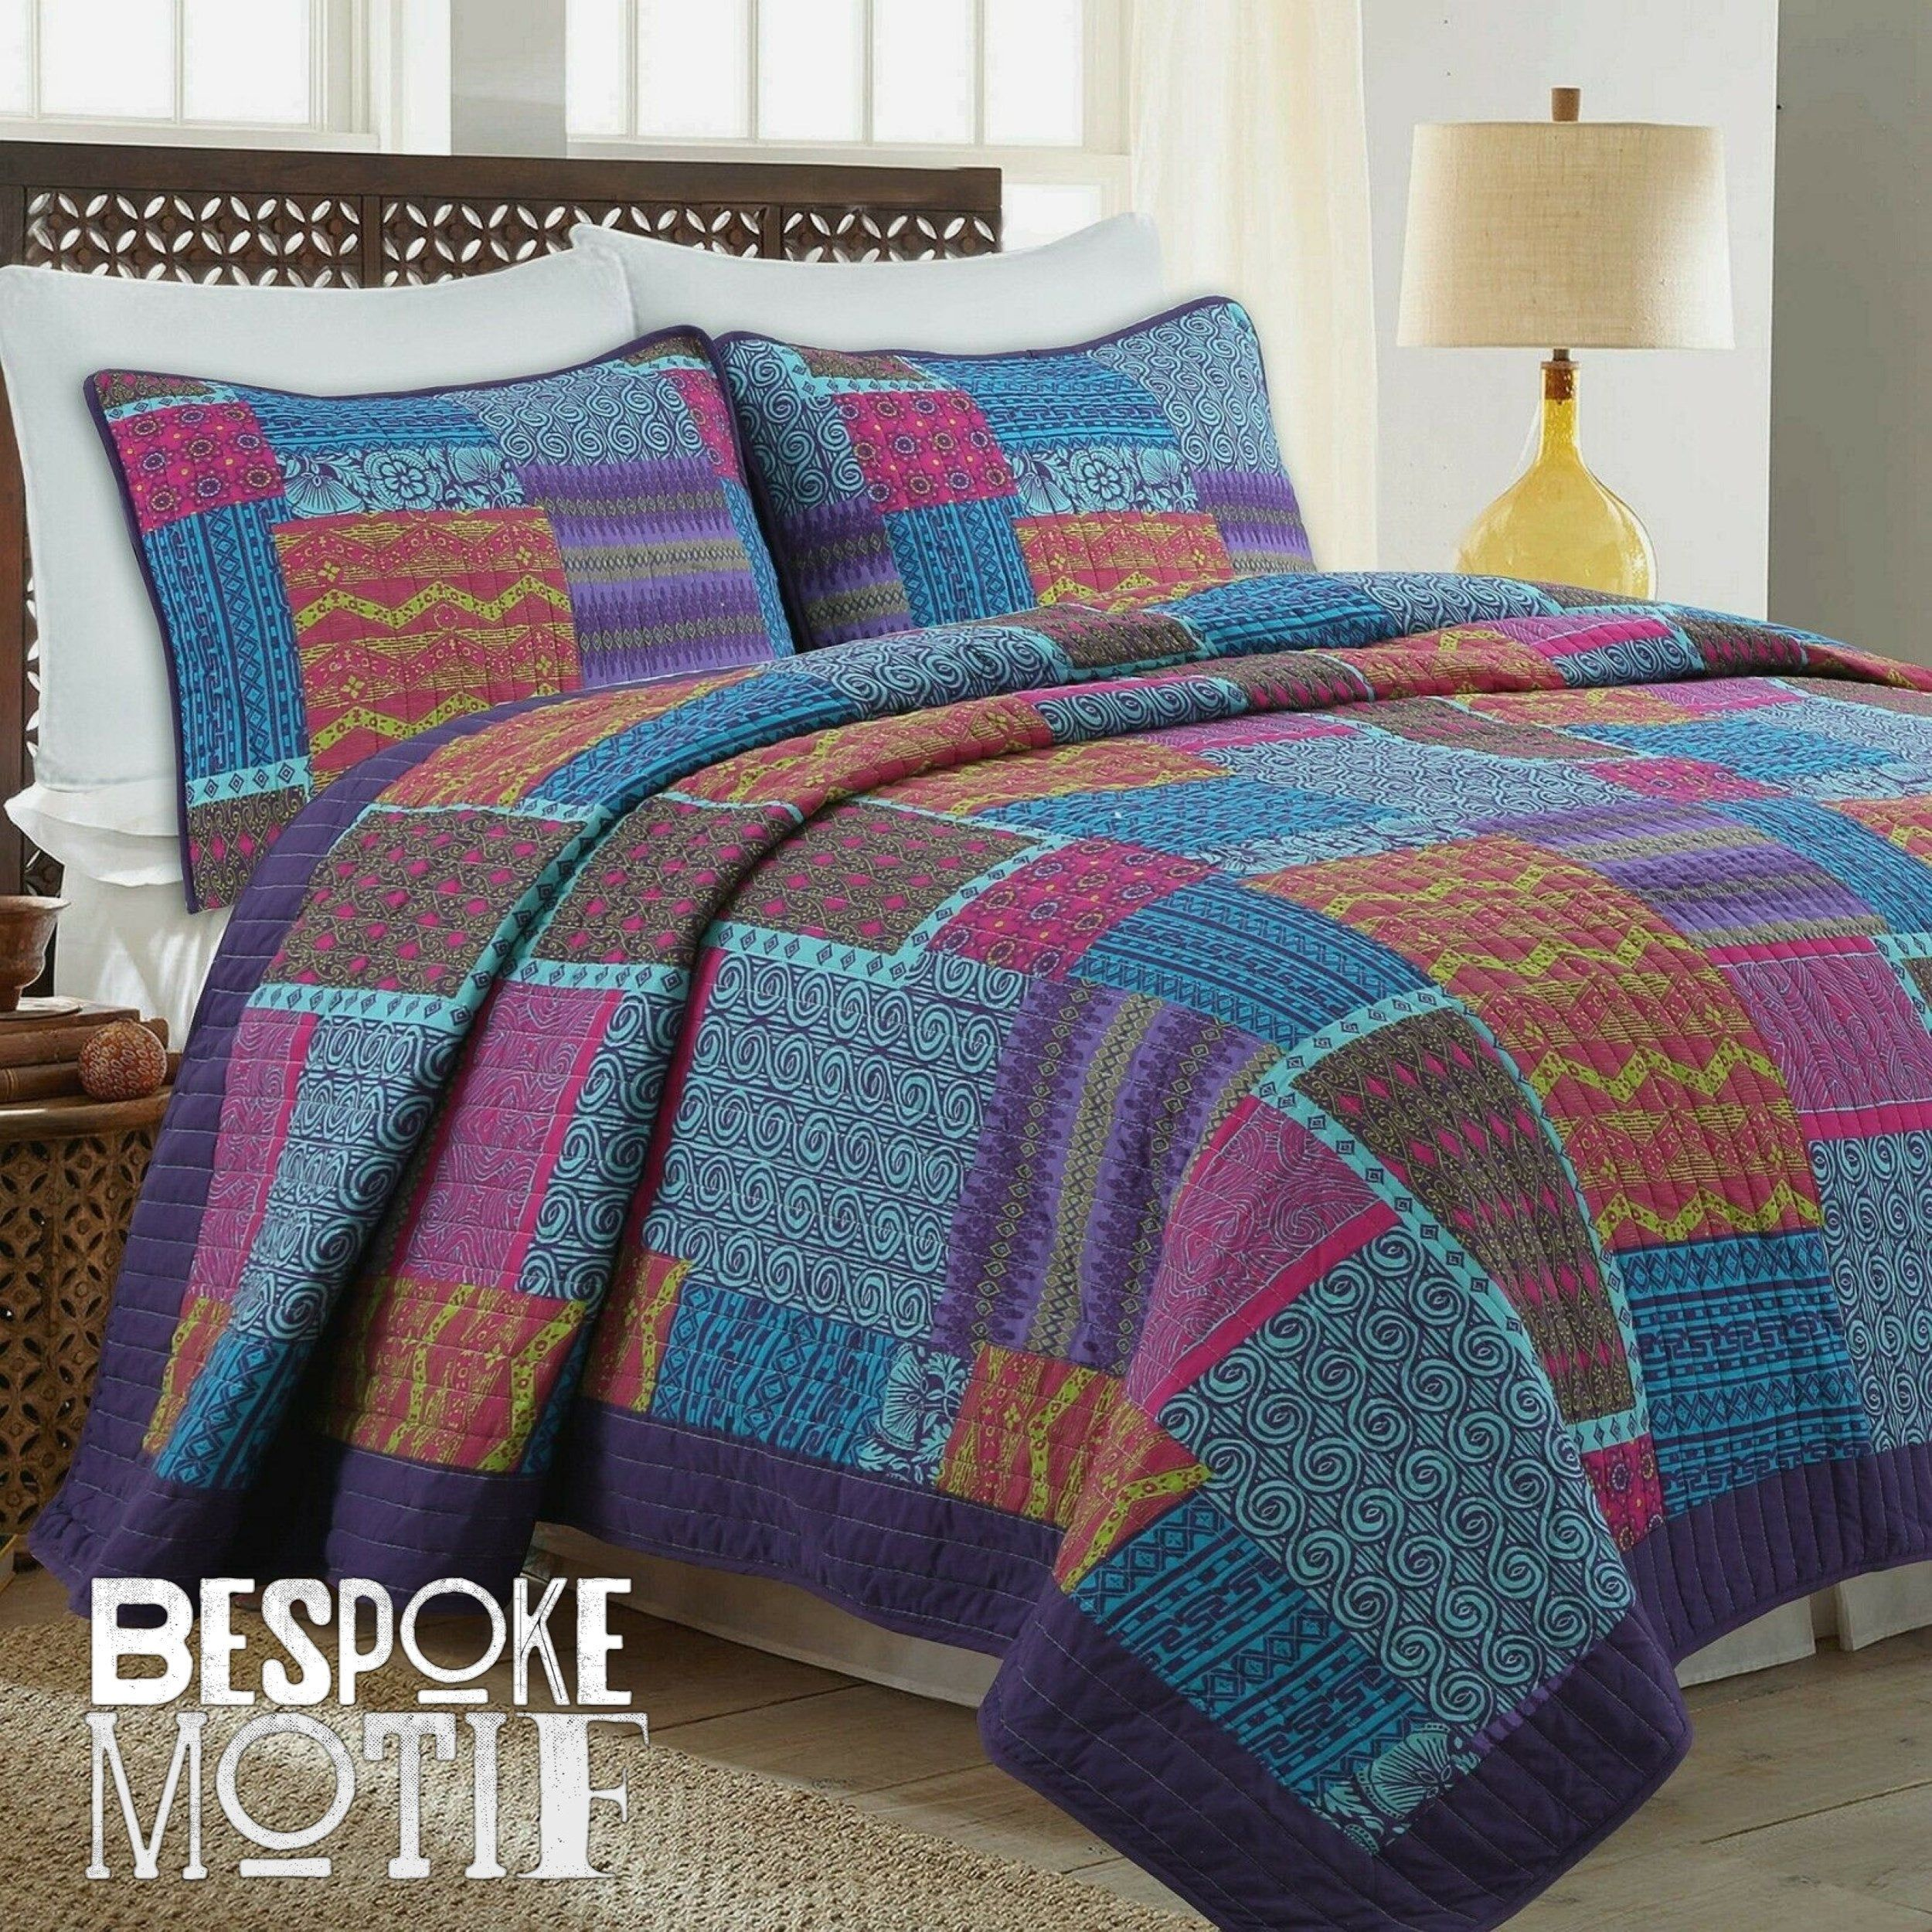 Hand Made Lavender King Size Quilt Purple Patchwork Quilt Set With Pillows Farmhouse Quilted Blanket Rag Quilt Quilt Bedding Set In 2020 Quilt Sets Blue Quilt Sets Bedding Quilt Sets